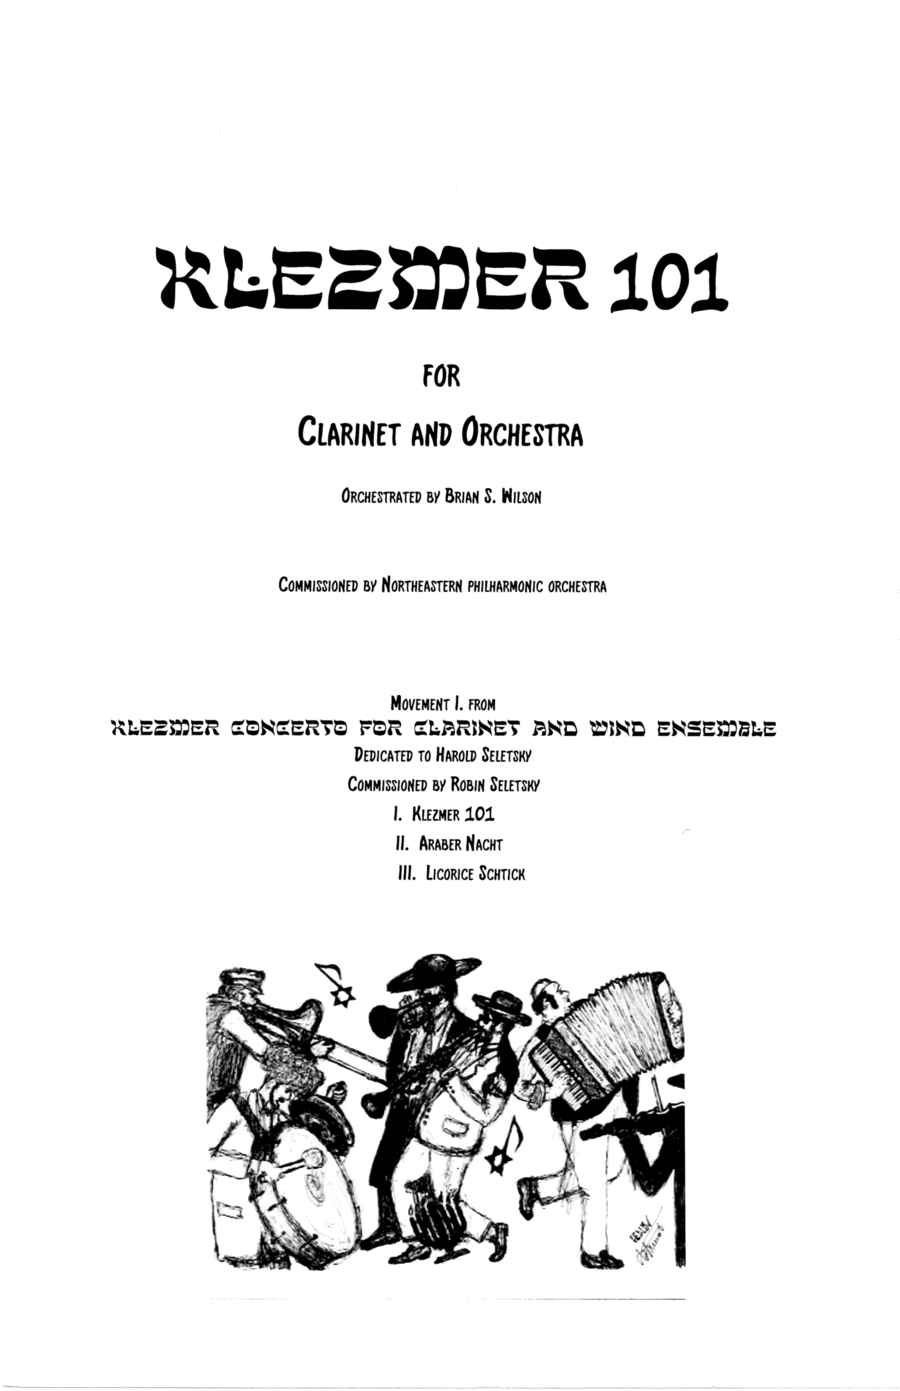 Klezmer Concerto for Clarinet and Wind Orchestra - Solo Clarinet part